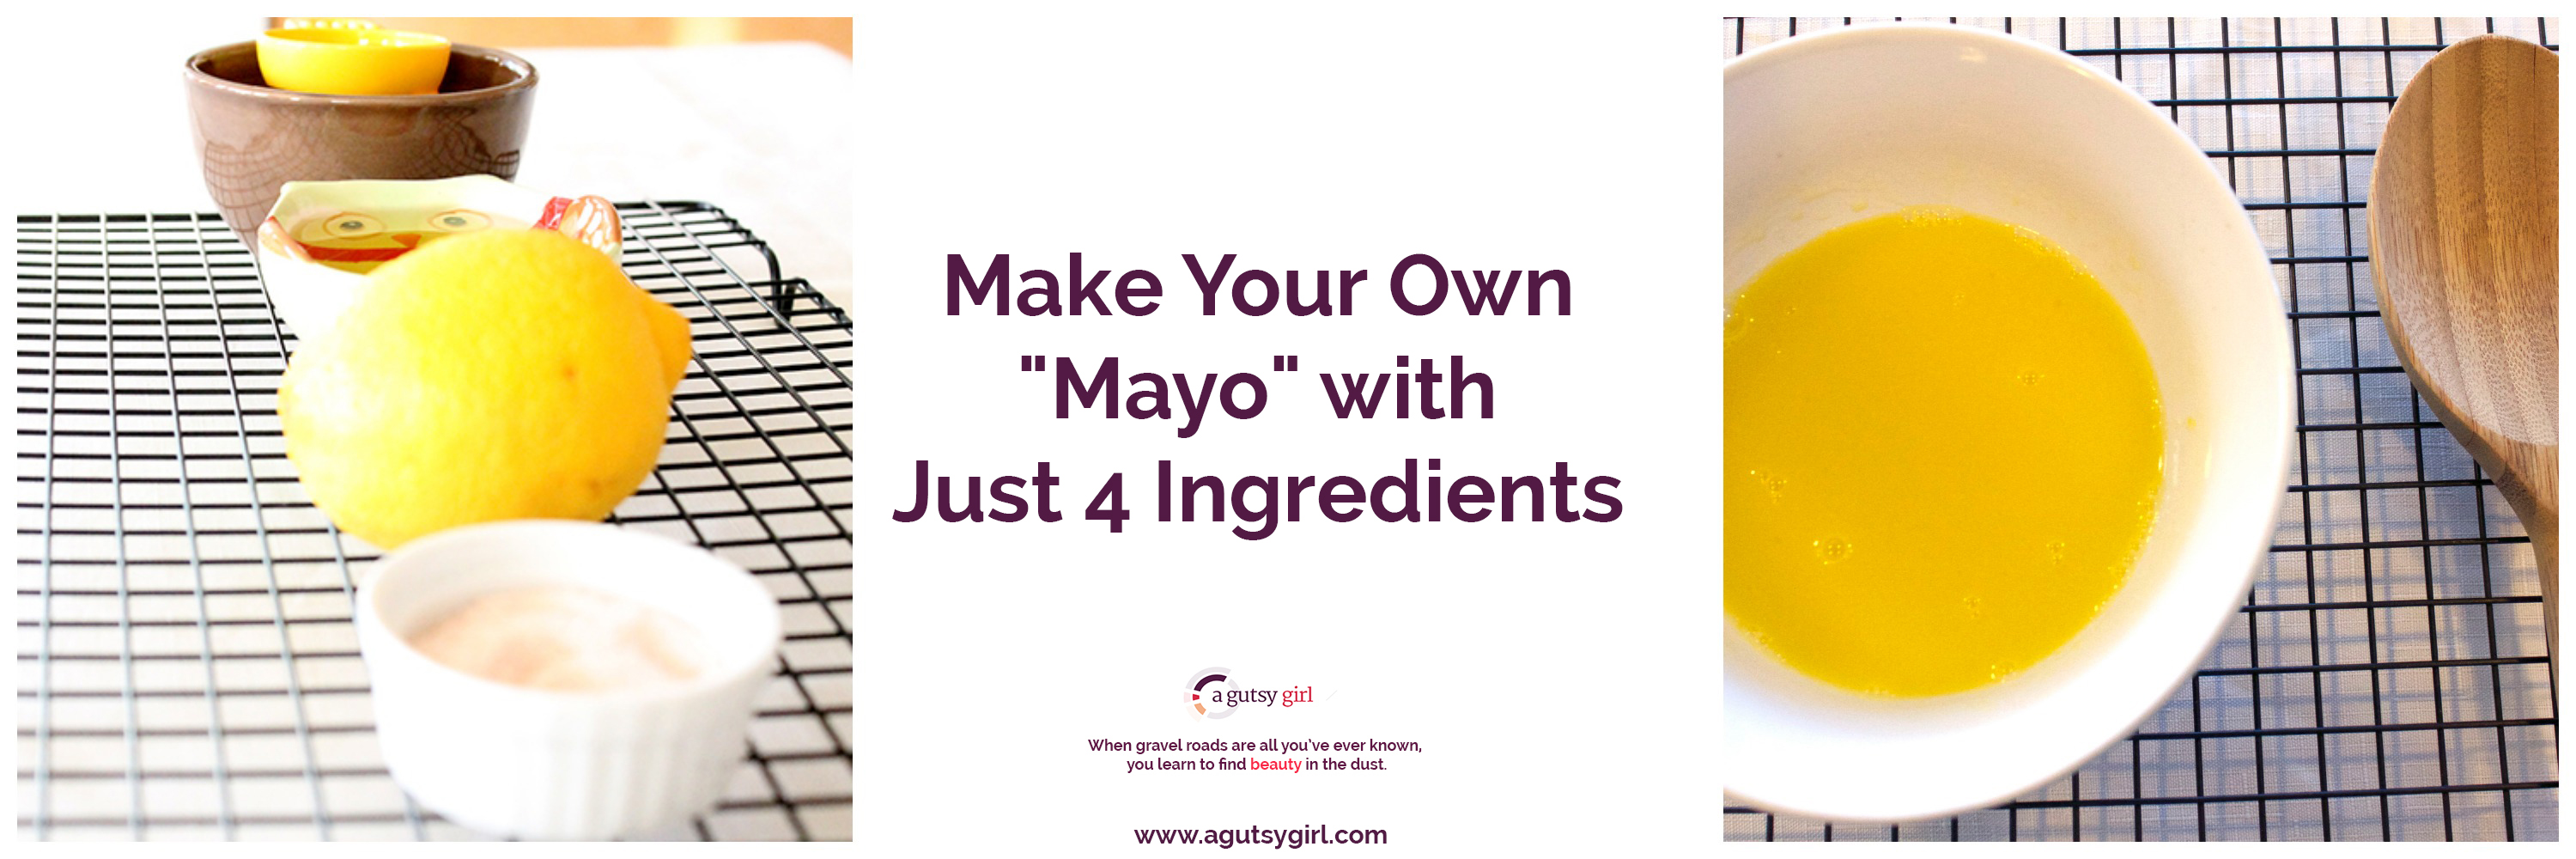 Make Your Own Mayo with Just 4 Ingredients